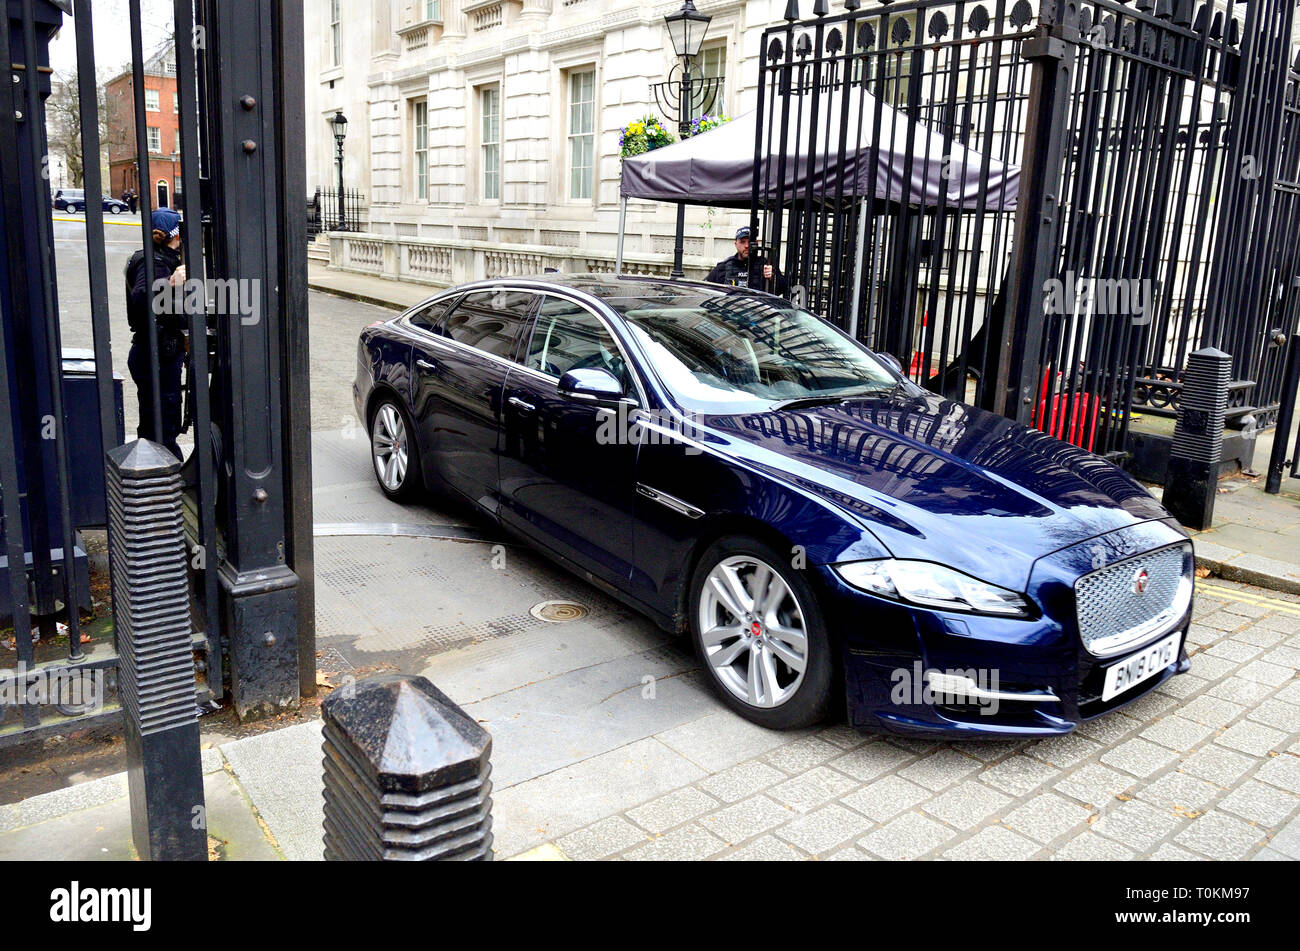 London, England, UK. Ministerial car leaving Downing Street - Stock Image